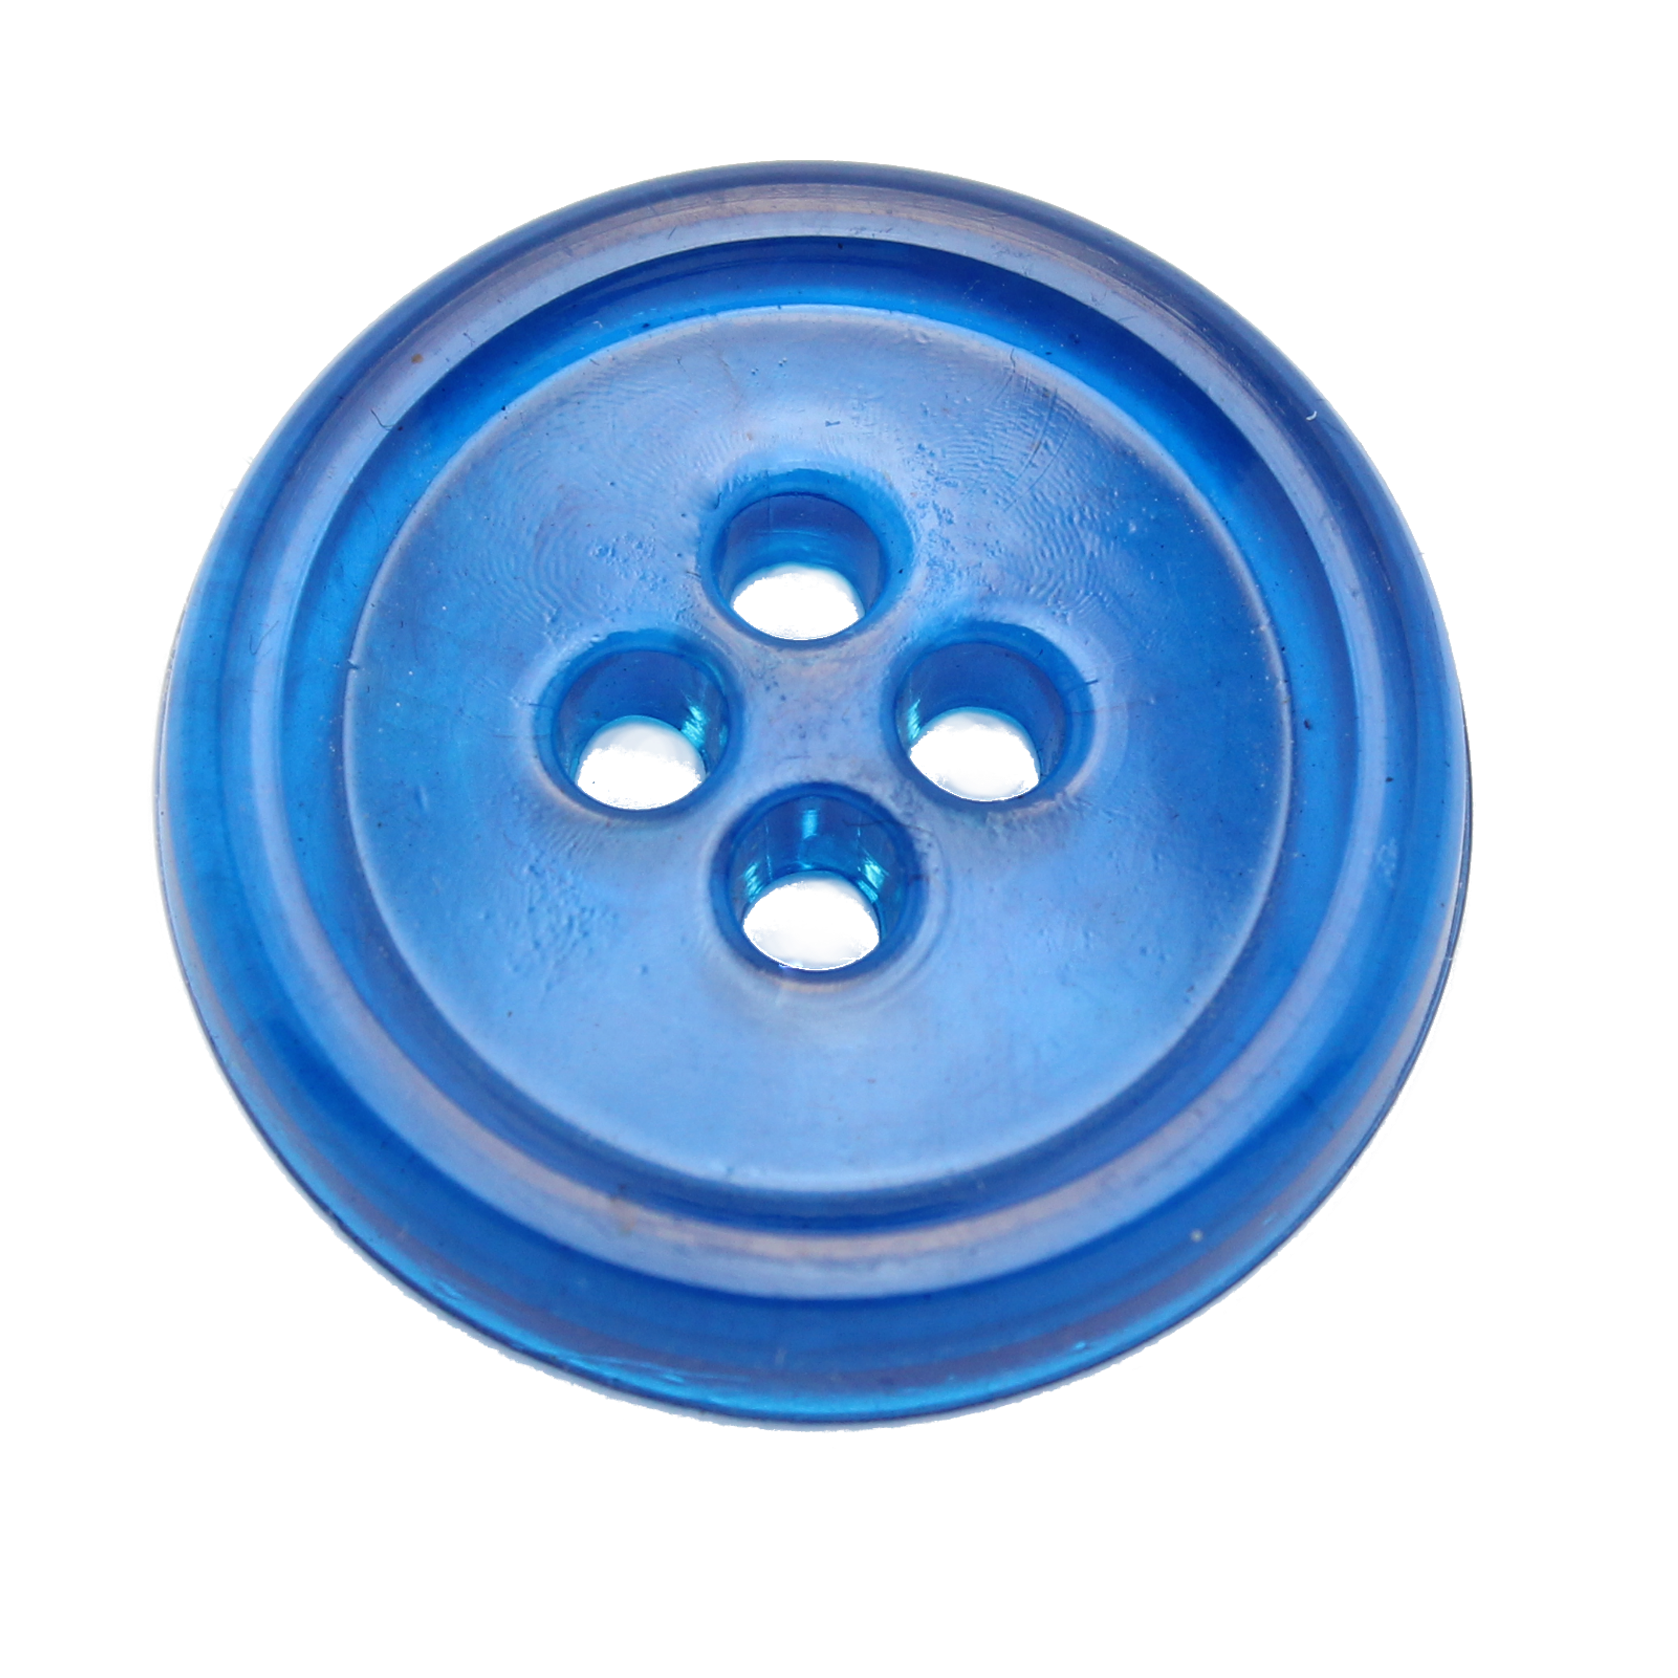 Blue Sewing Taylor Button Png Image Png Images Buttons Png